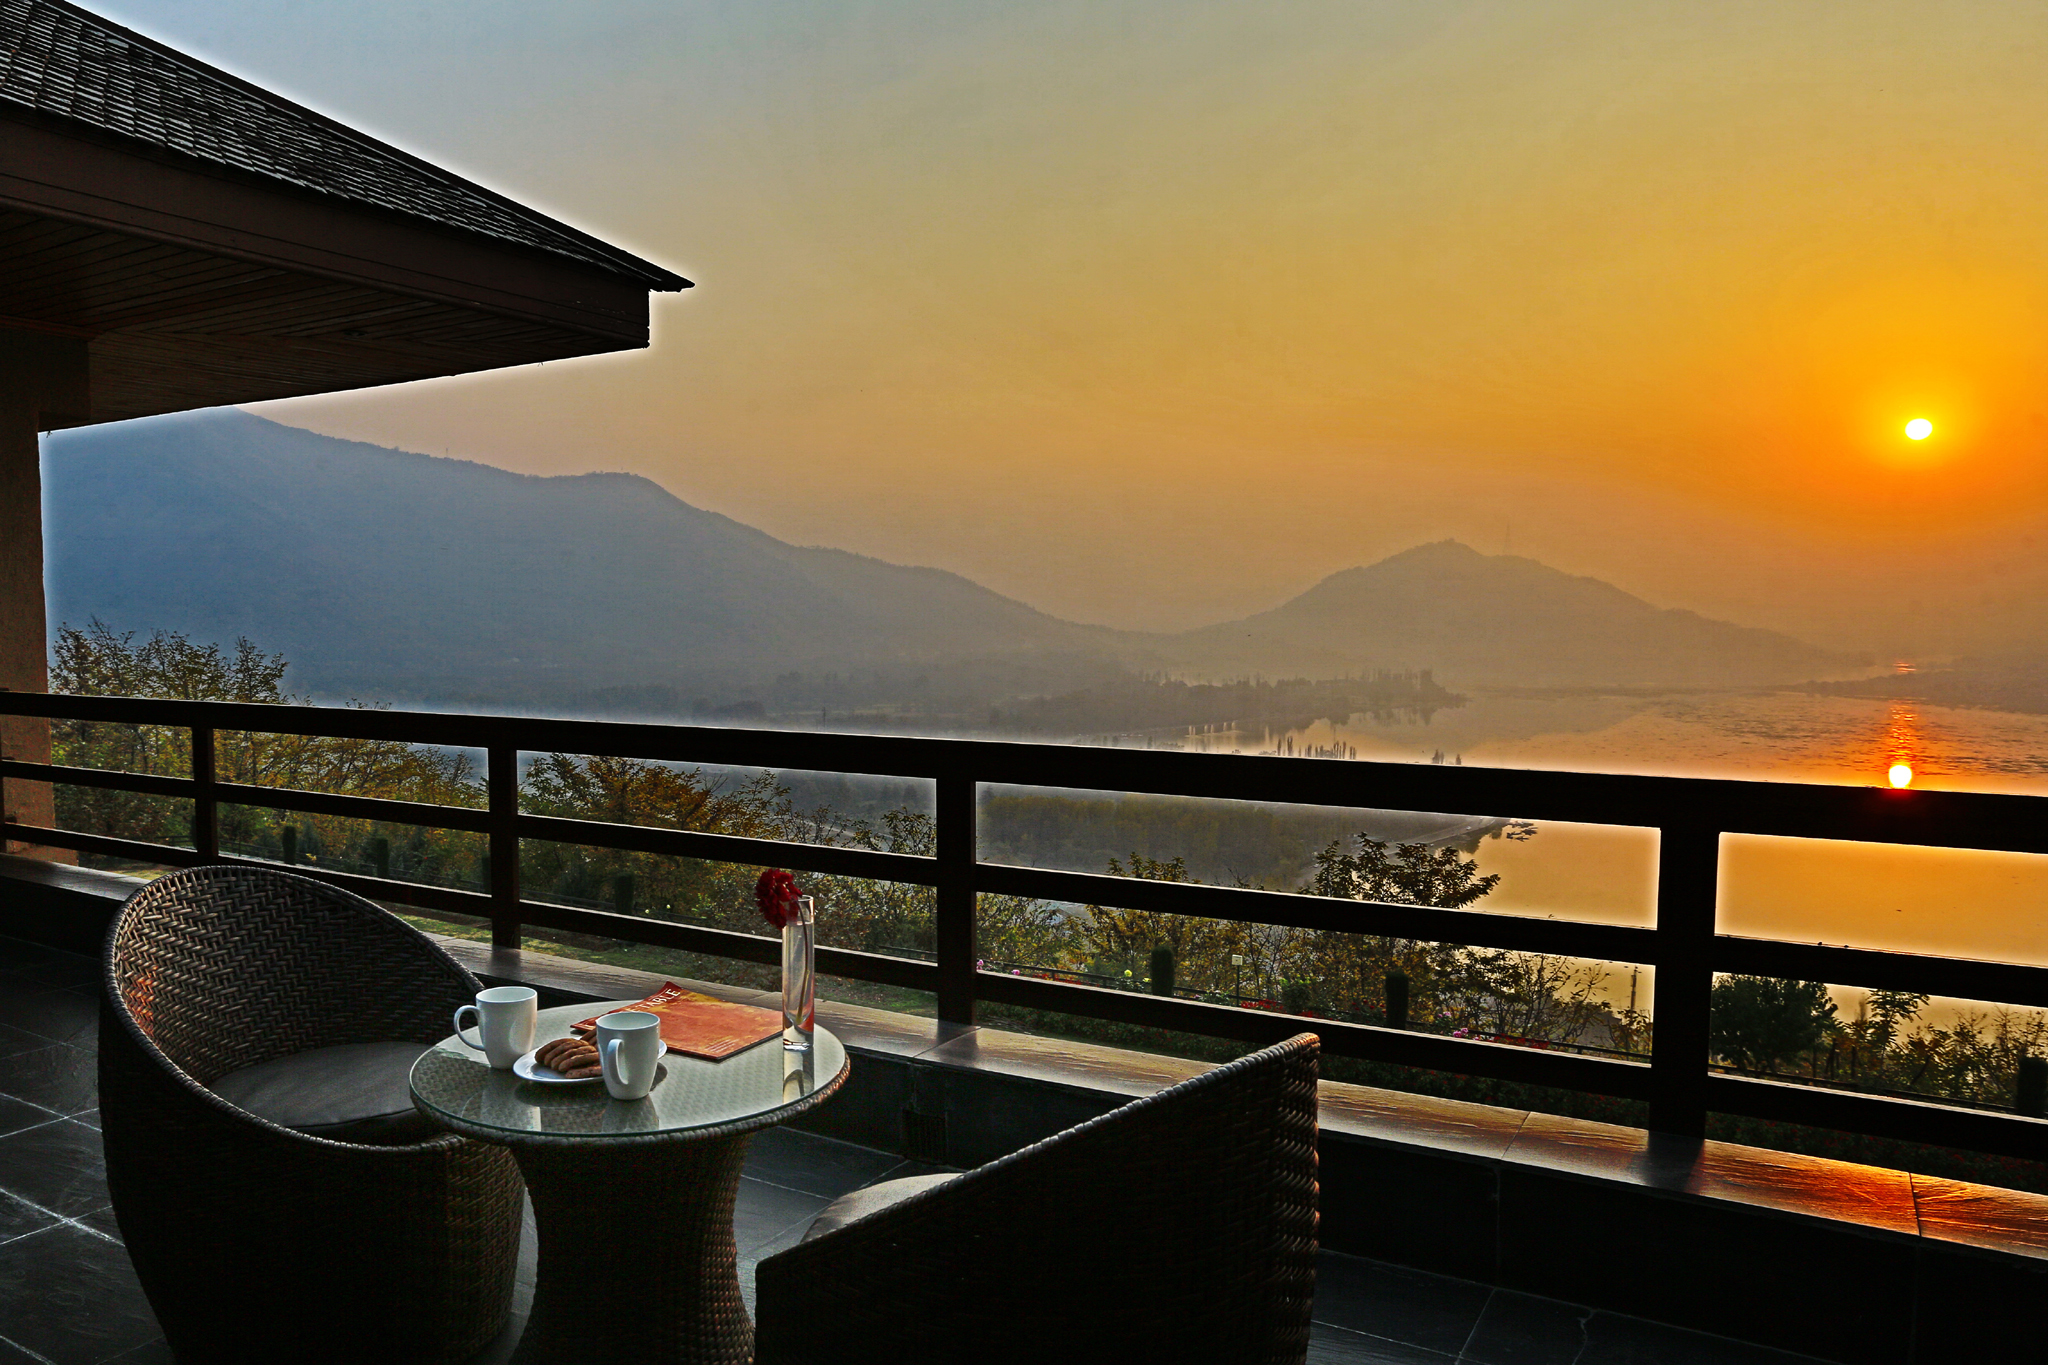 Wine and dine with a beautiful sunset - Bachelorette trip Destinations in India